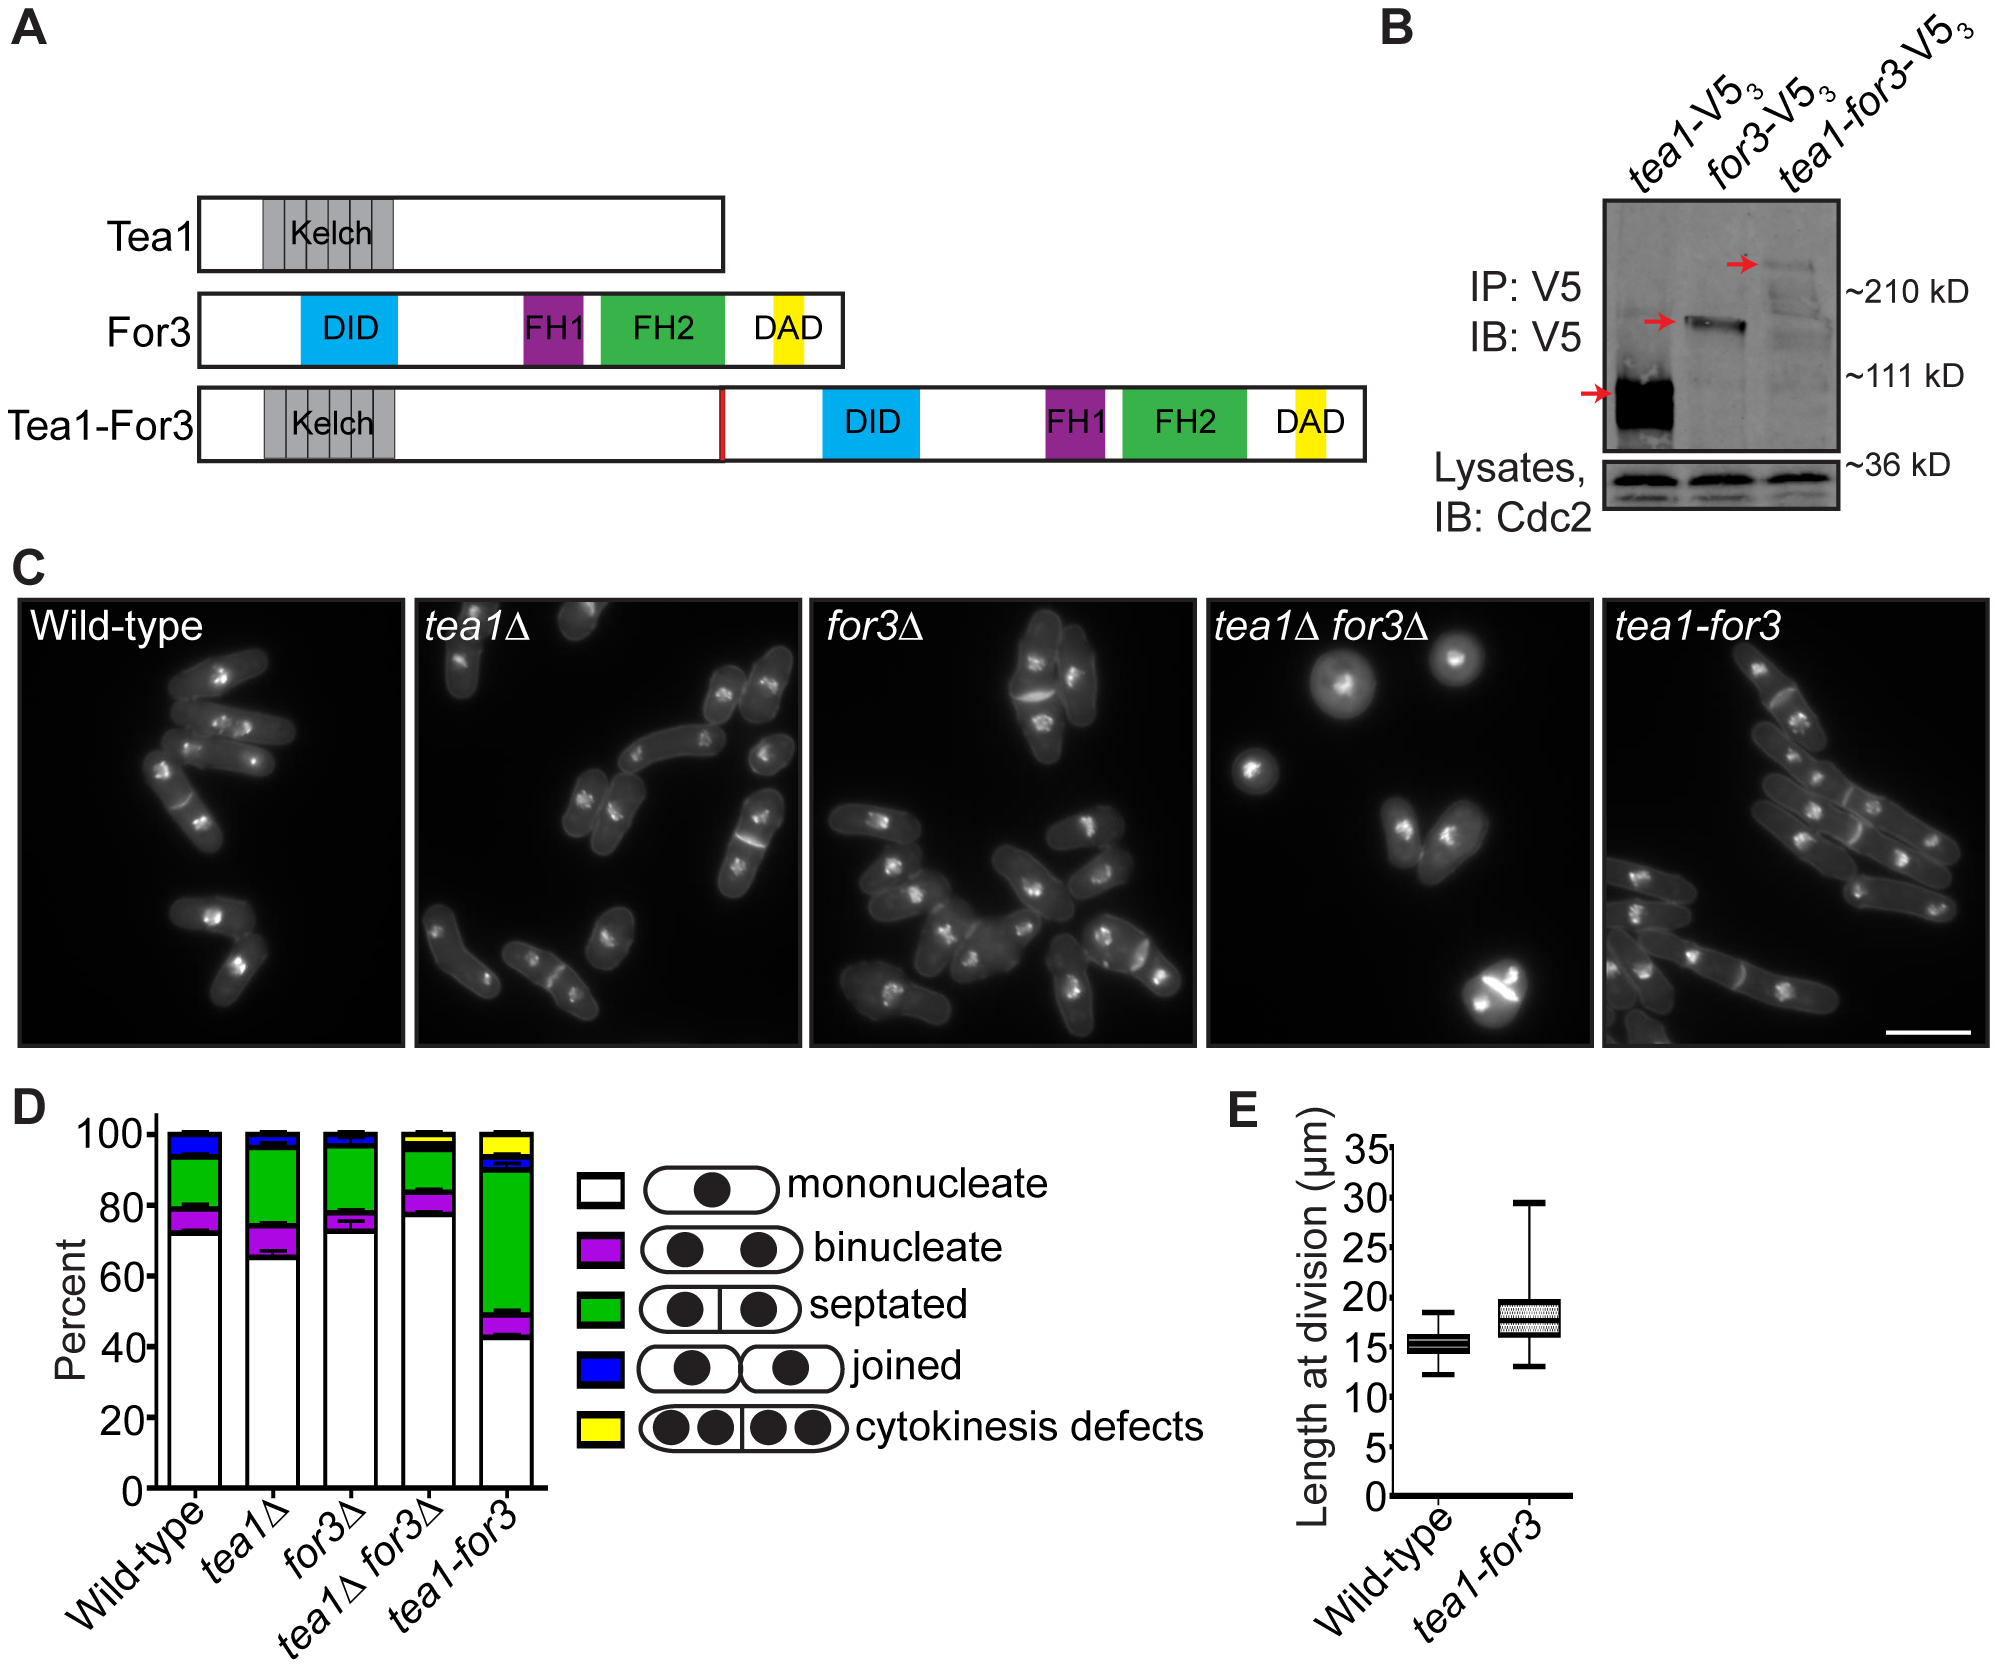 An endogenous Tea1-For3 fusion protein is functional but impinges on the cell division machinery.